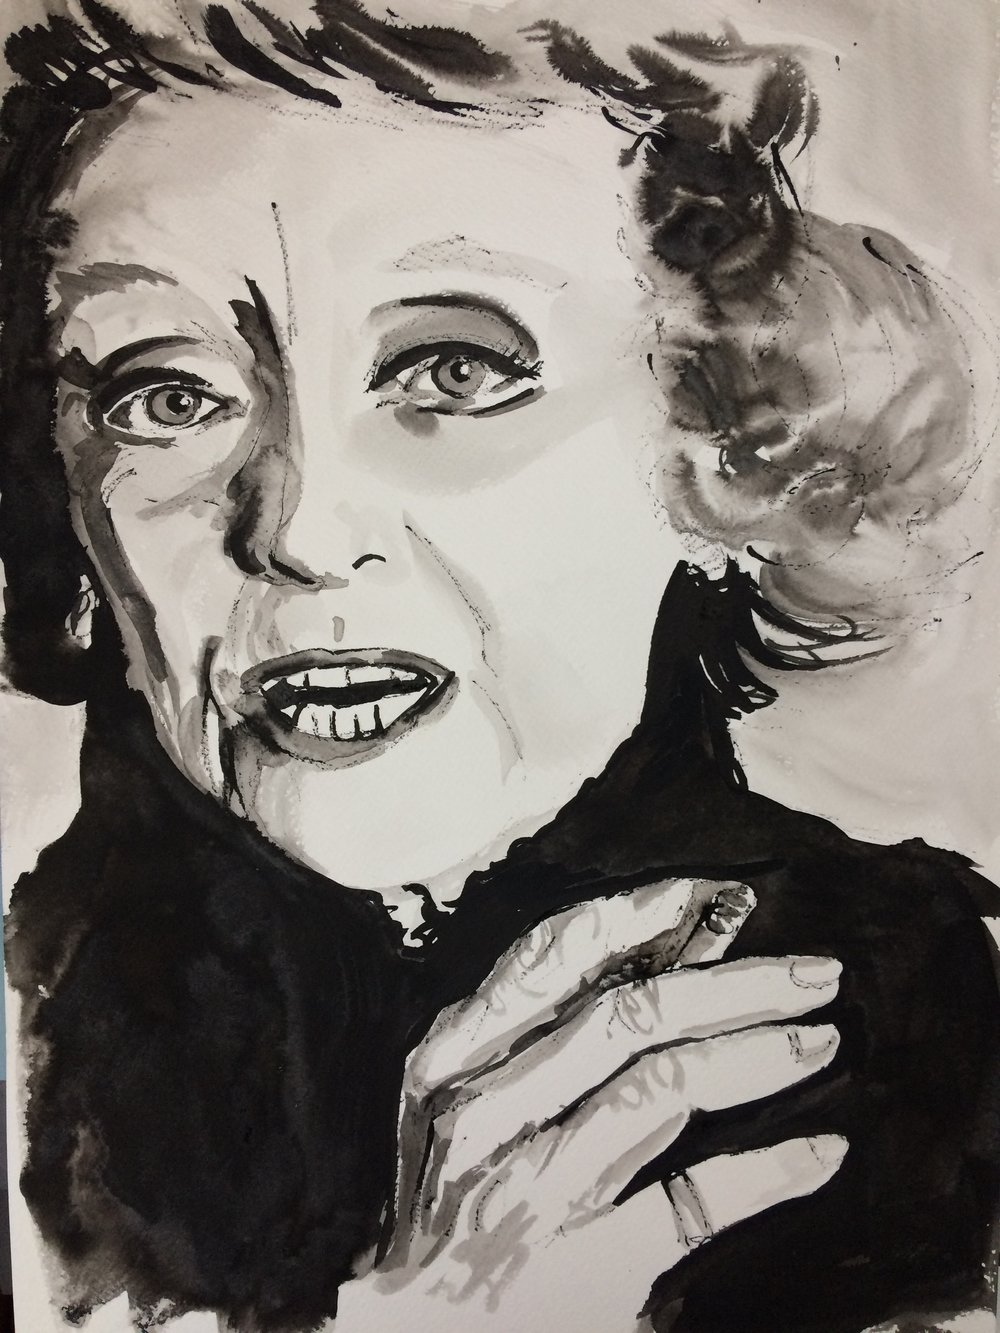 Bette. Indian Ink on watercolor paper, (230g/m2), A3 (42x29,7 cm). Available.